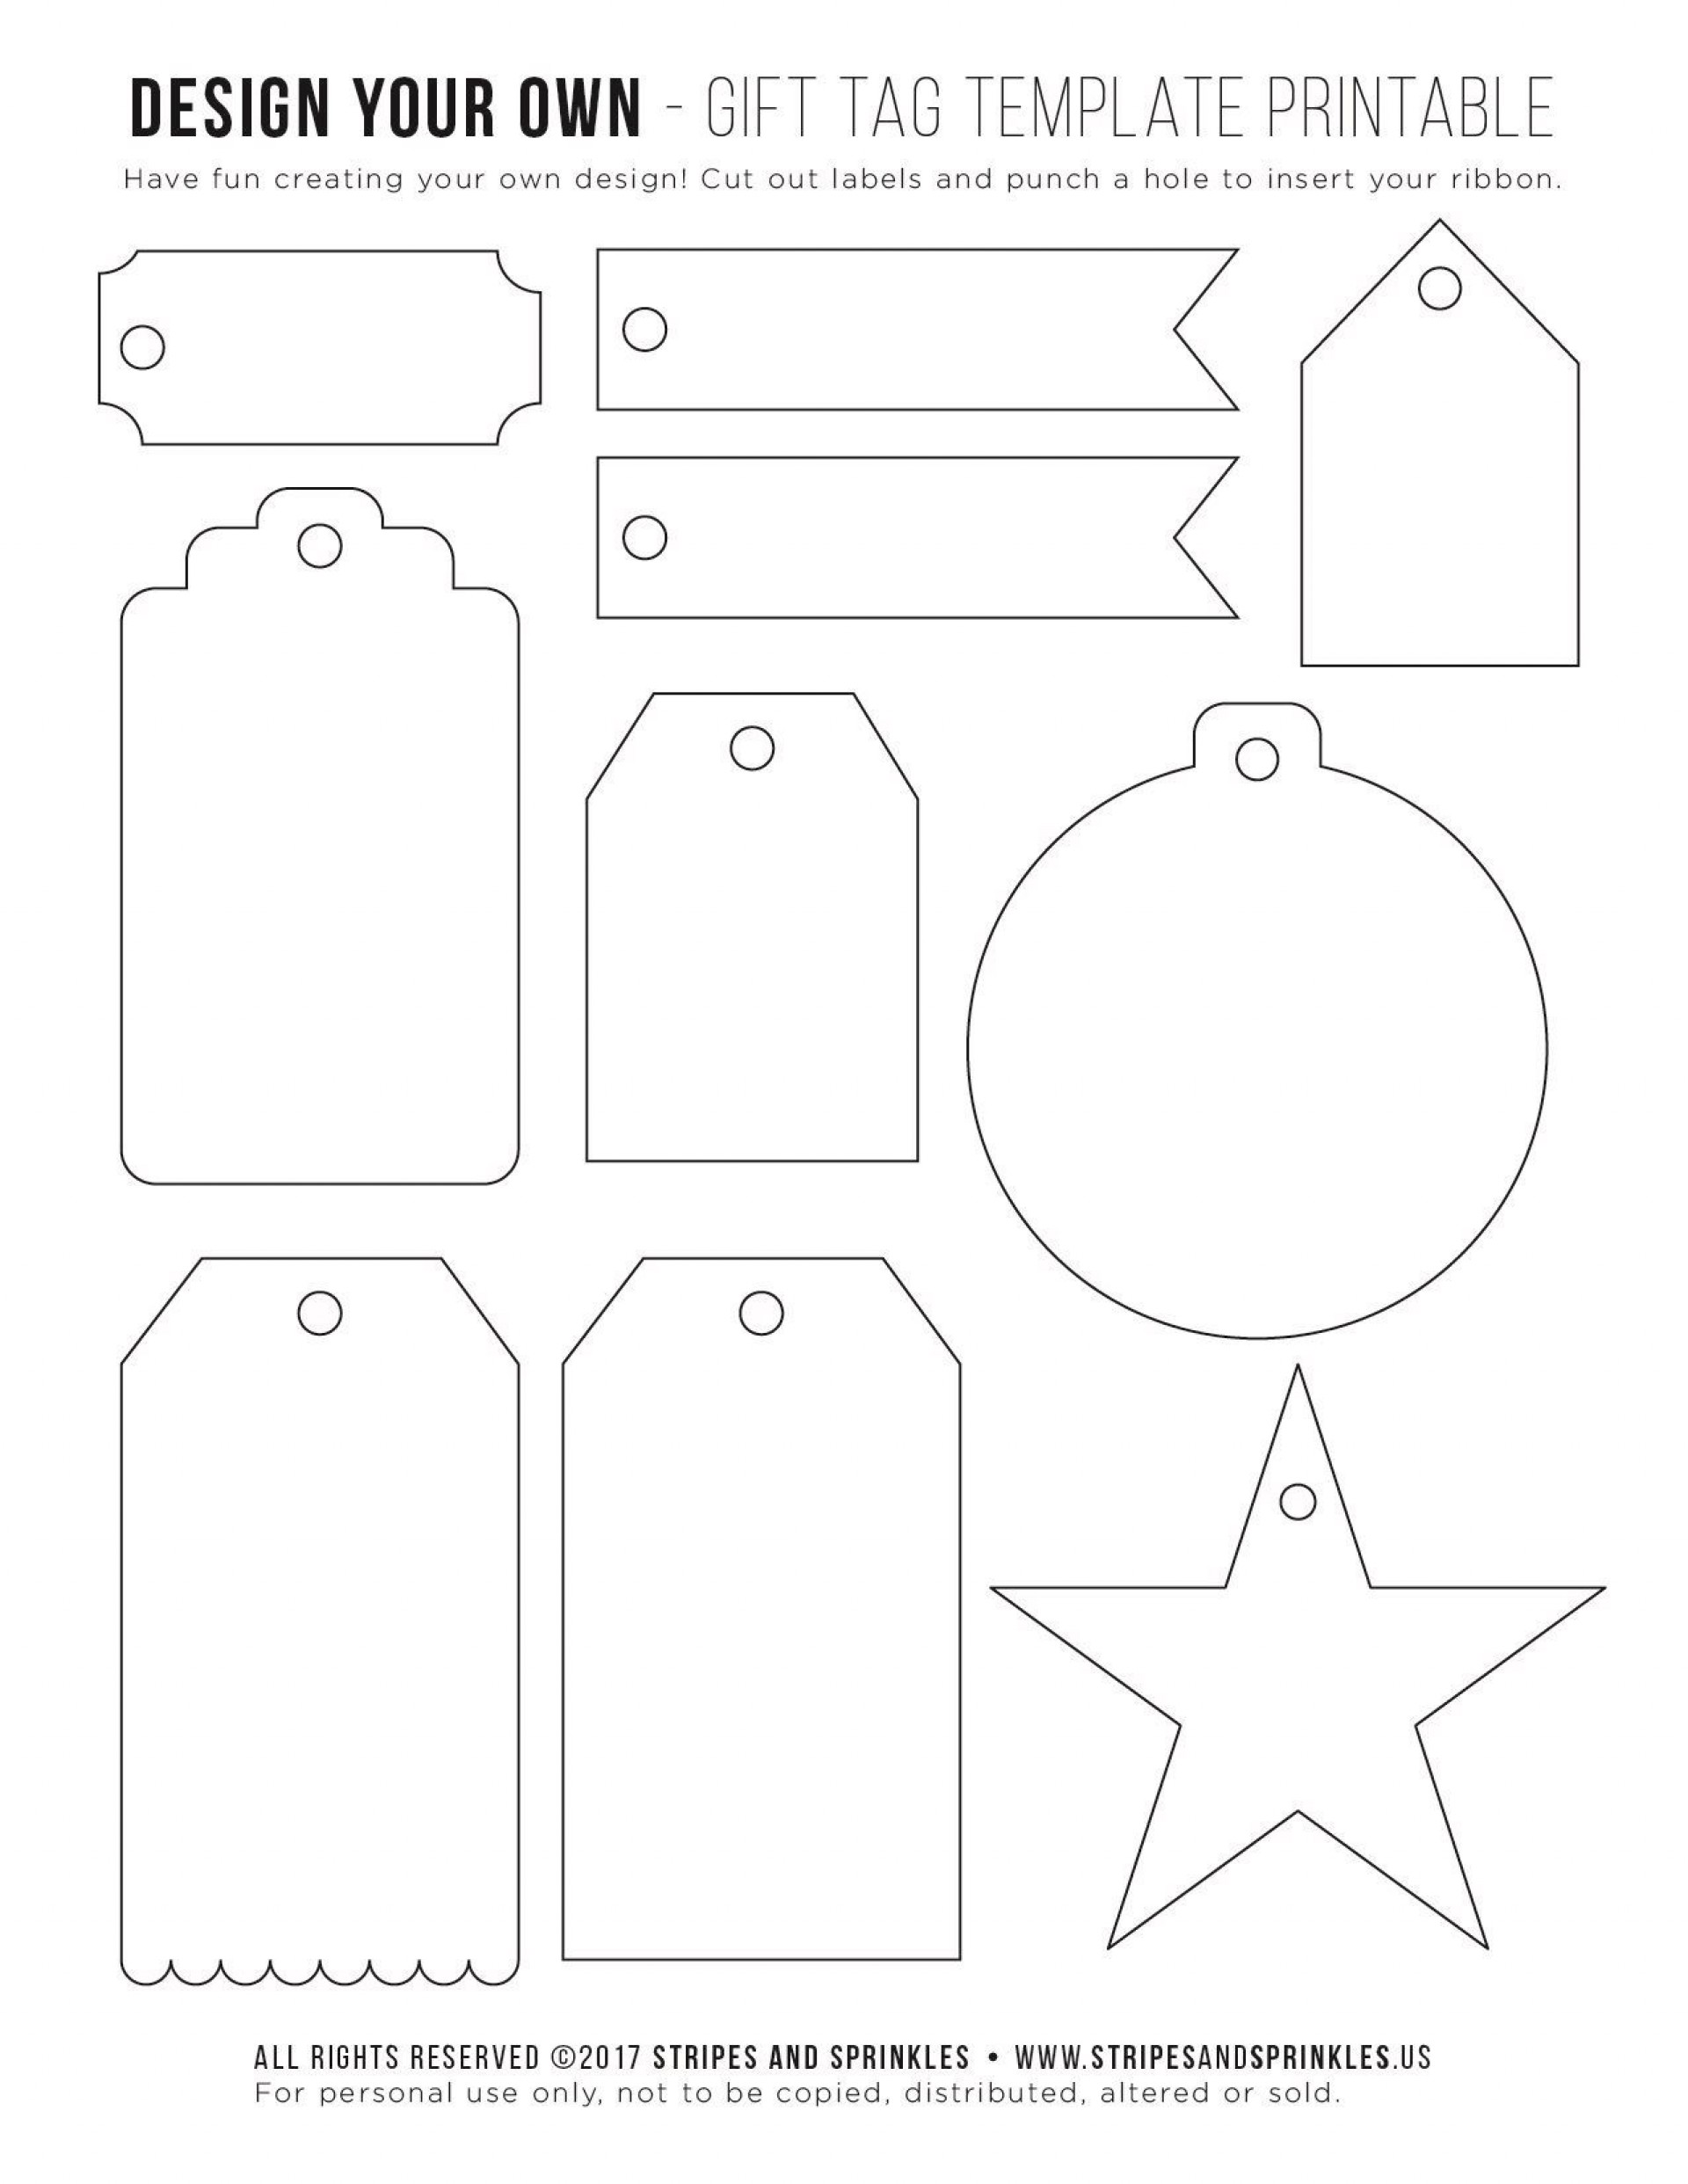 004 Remarkable Template For Gift Tag Highest Clarity  Tags Blank Avery1920